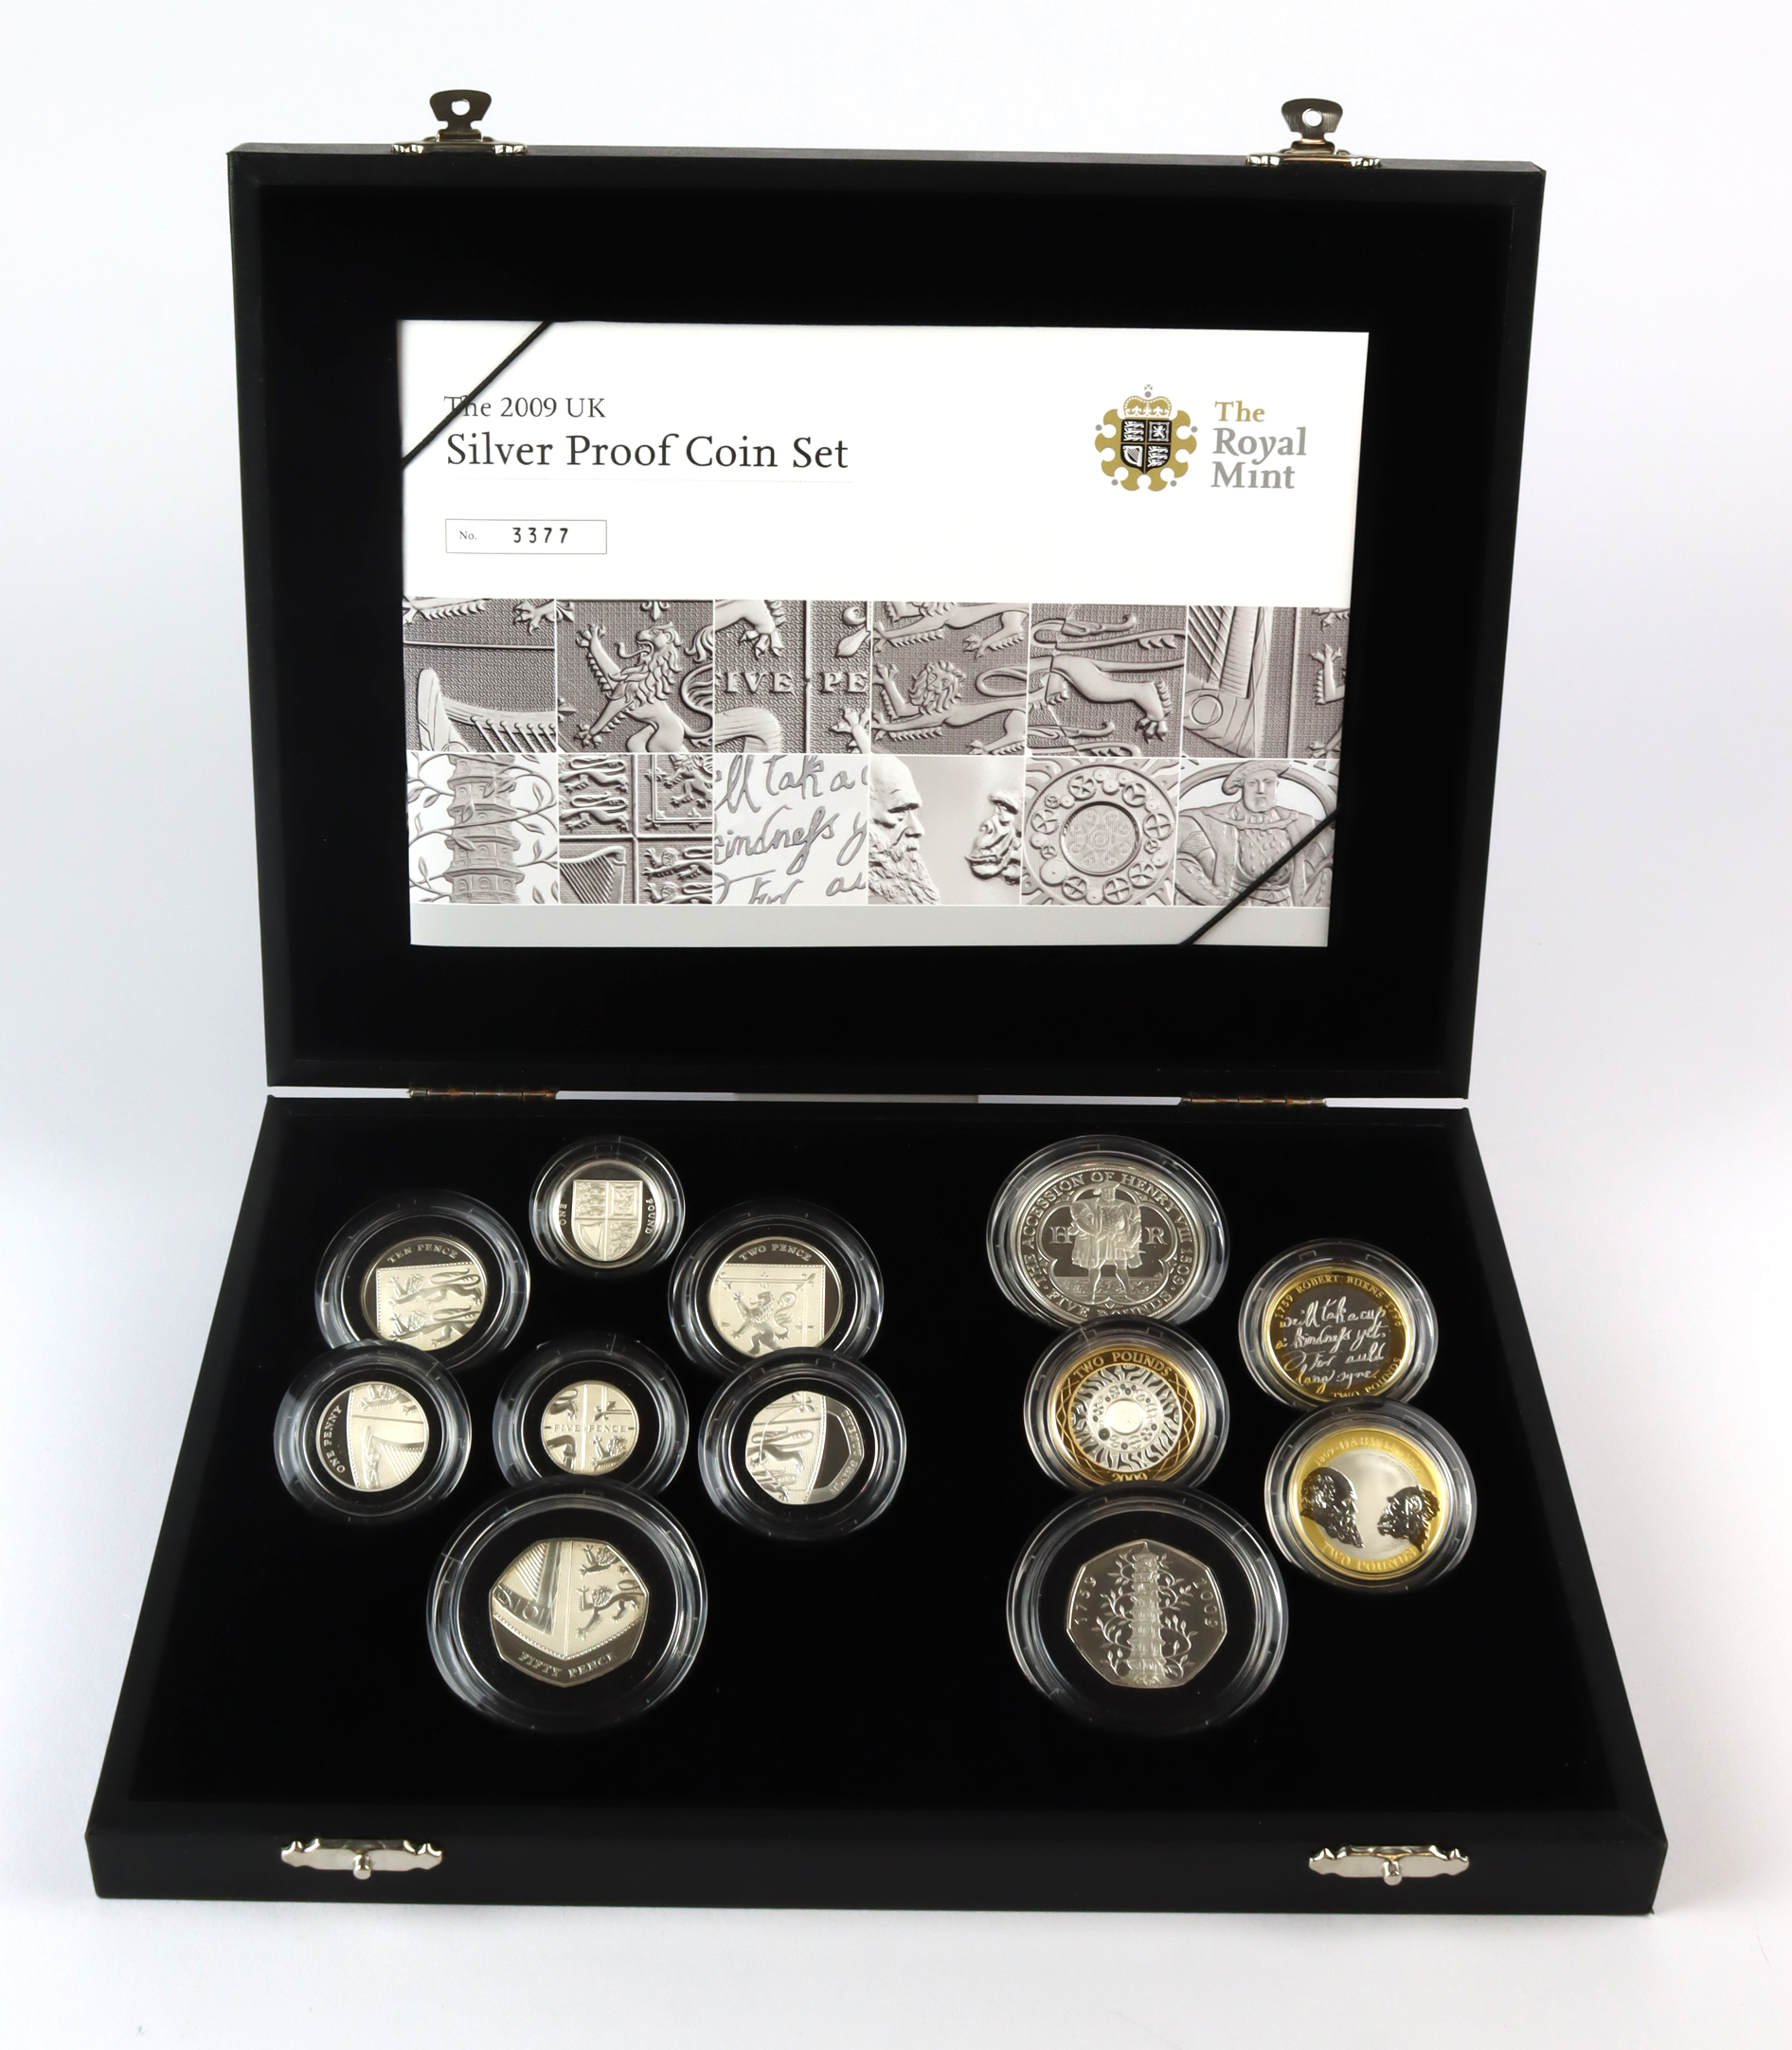 Proof Set 2009, the 12 coin set all struck in Silver. Five Pounds Henry VIII, Two Pounds (3) Darwin,